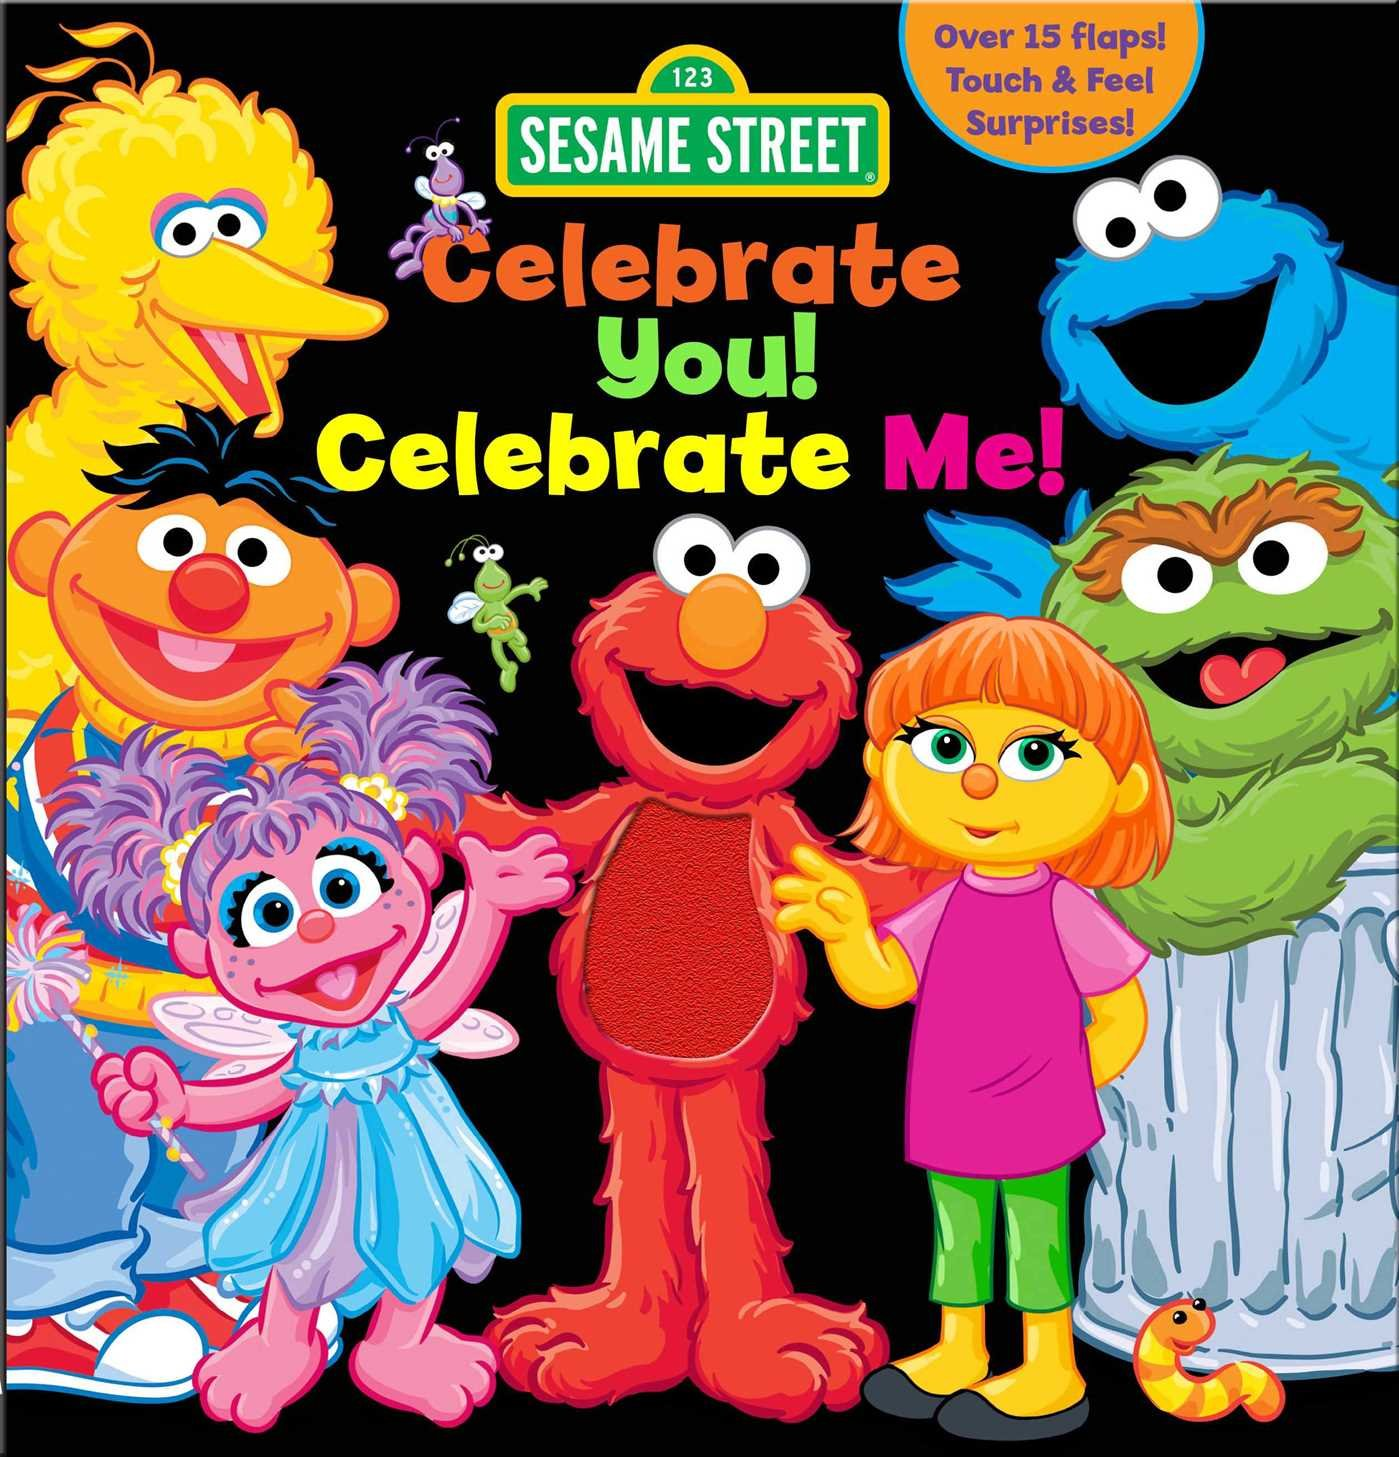 Read Online Sesame Street: Celebrate You! Celebrate Me!: A Peek and Touch Book (123 Sesame Street) pdf